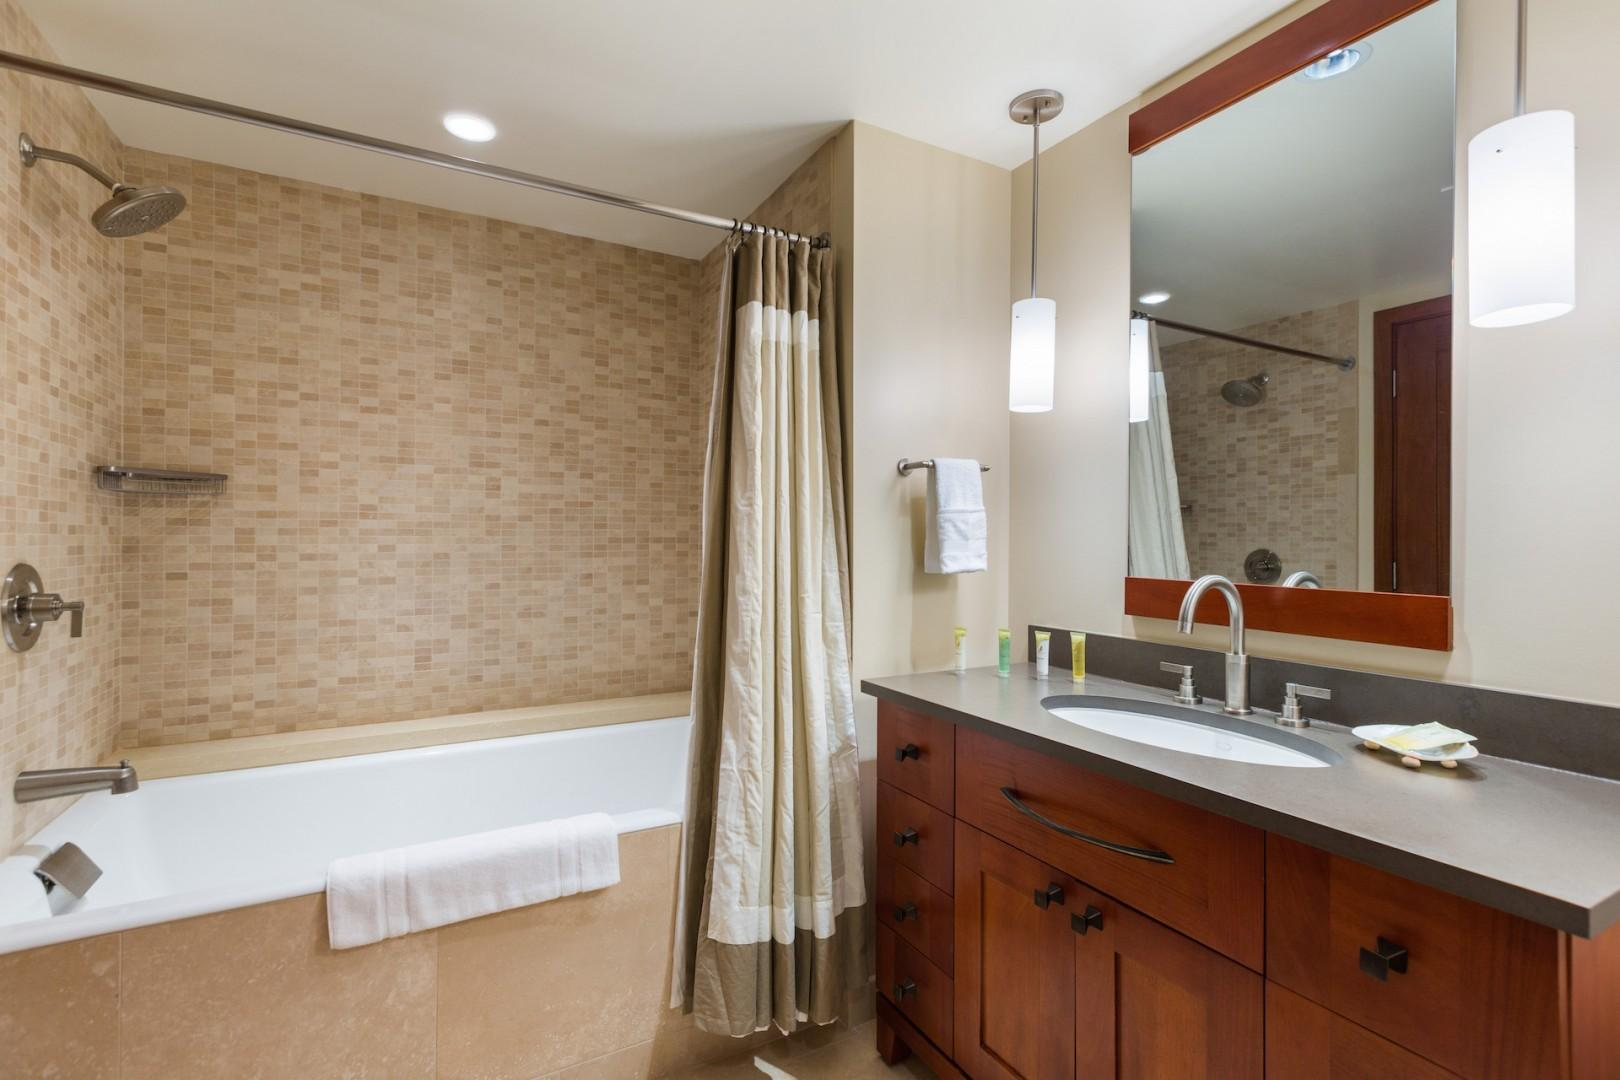 3rd/last bathroom. Full bath with tub/shower combo, sink and toilet. A starter supply of bath amenities and toilet paper is included.